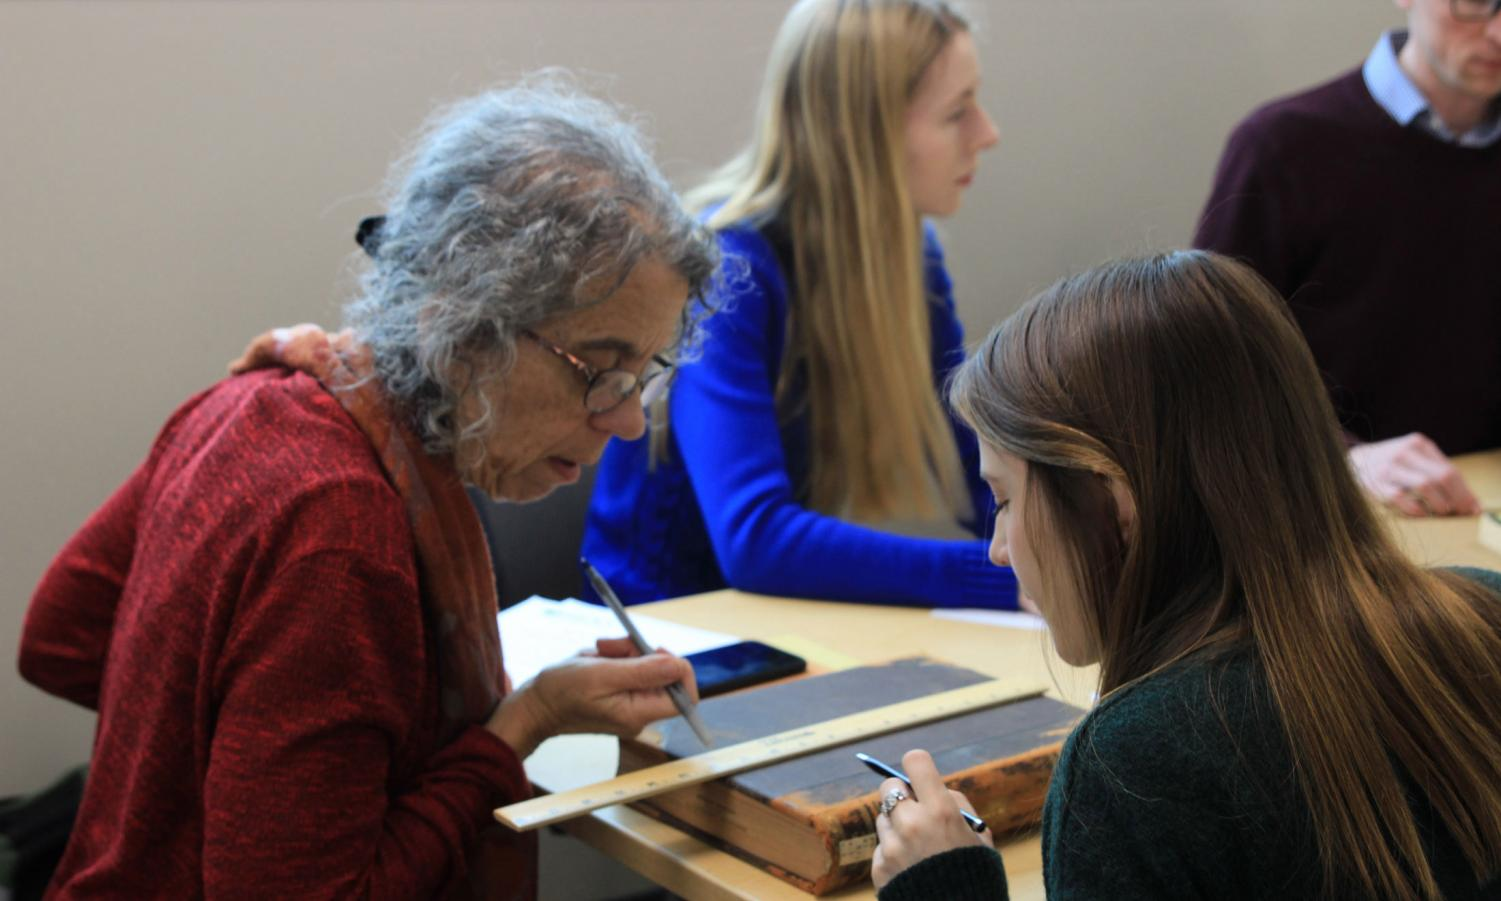 Students and staff participate in book measuring during a workshop on preserving old and rare books.